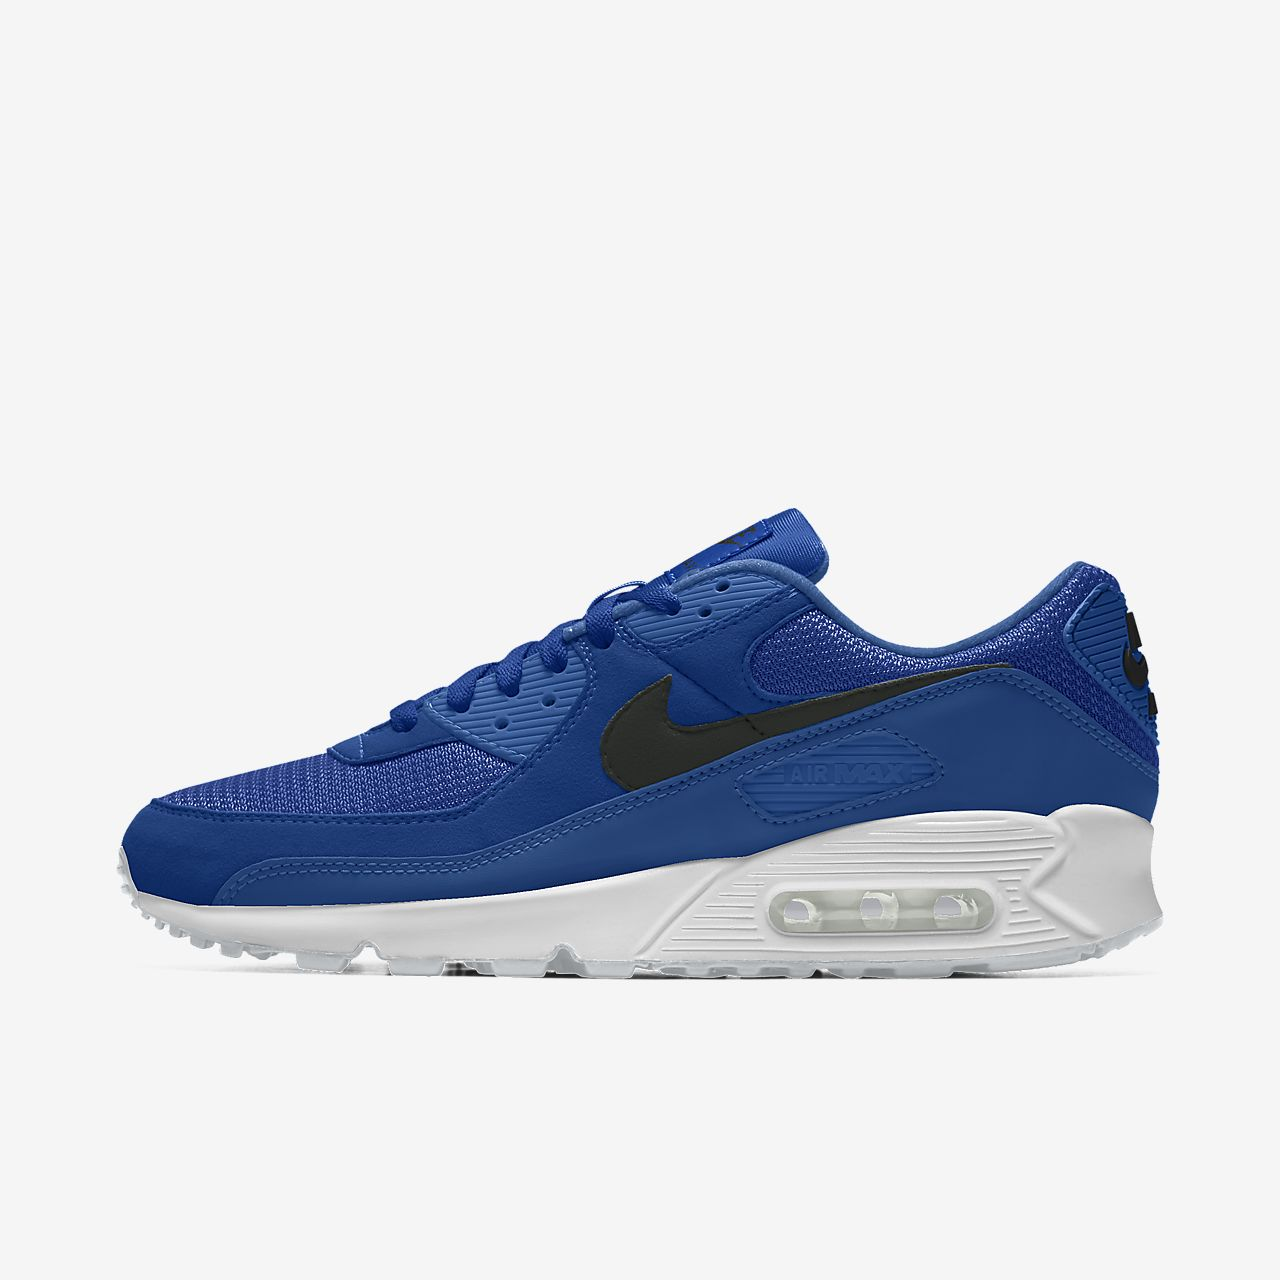 Nike Air Max 90 By You Custom herenschoen